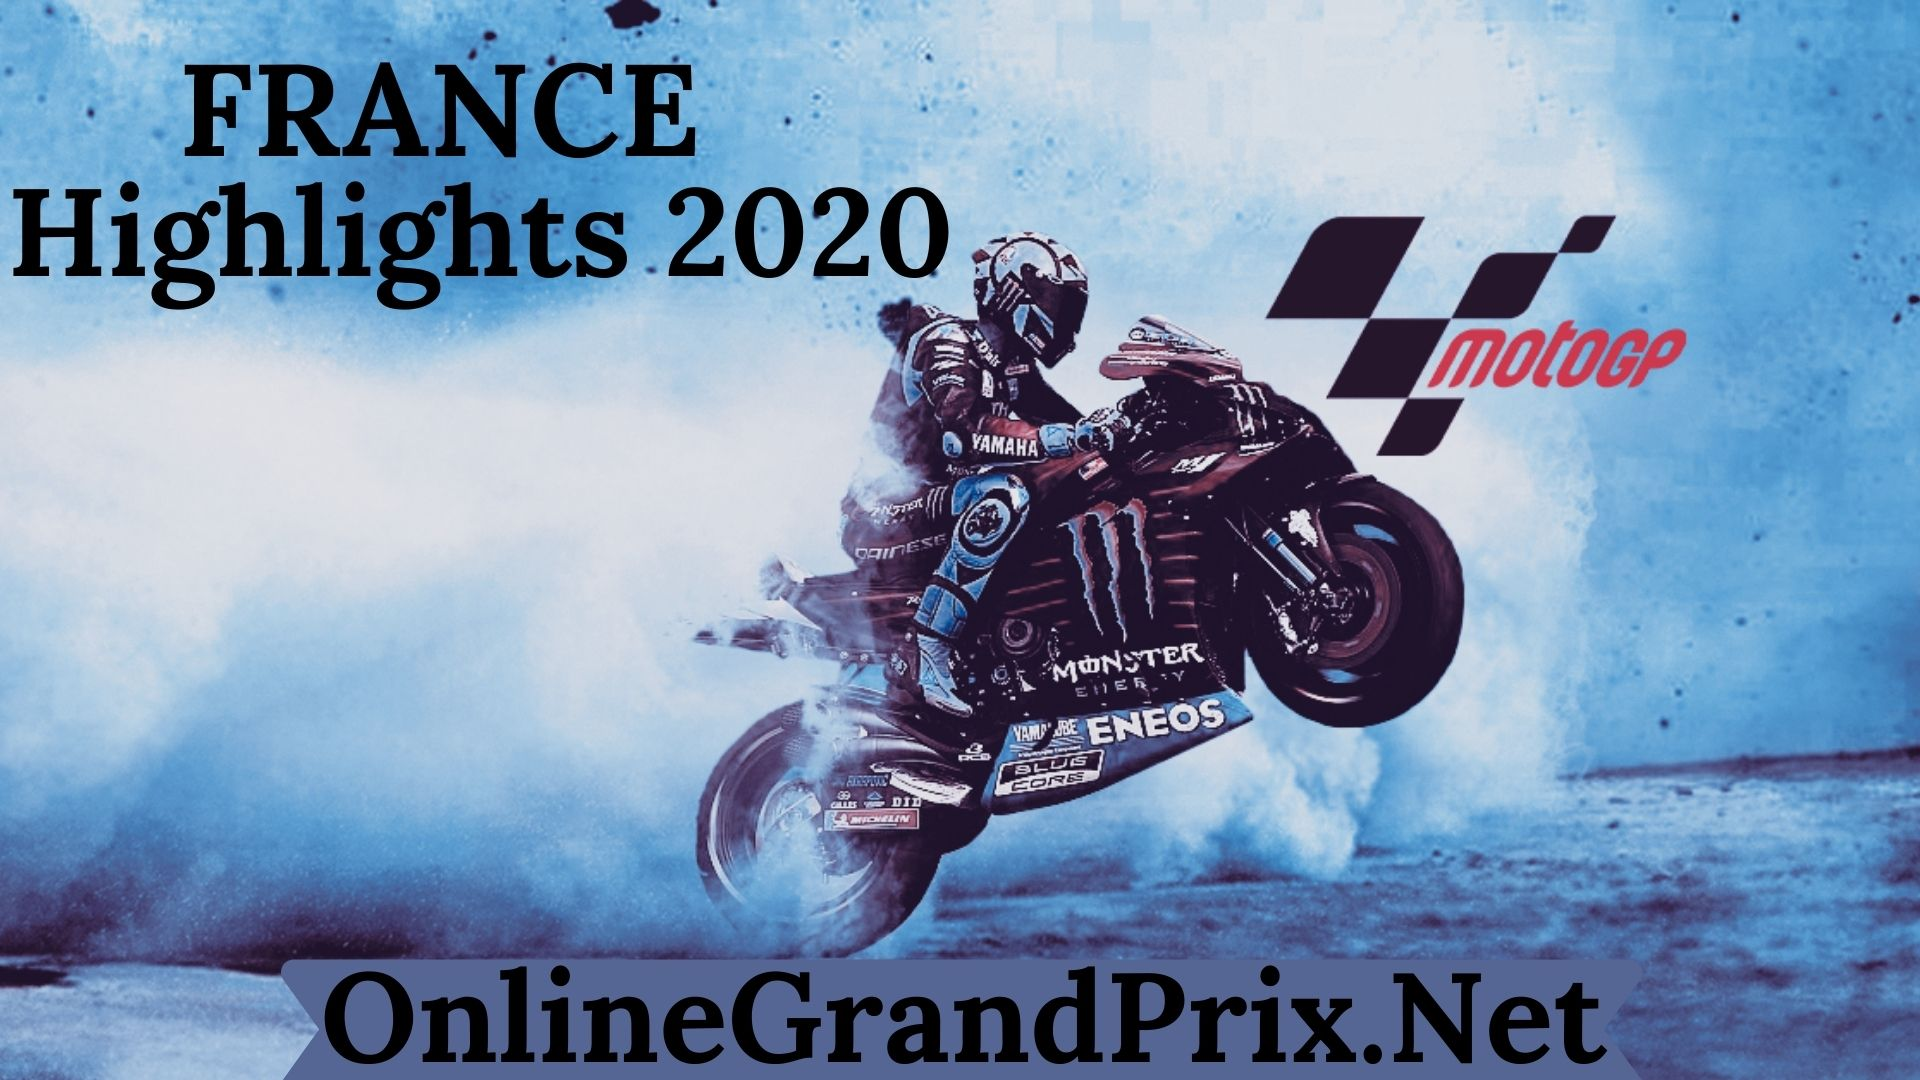 France MotoGP Highlights 2020